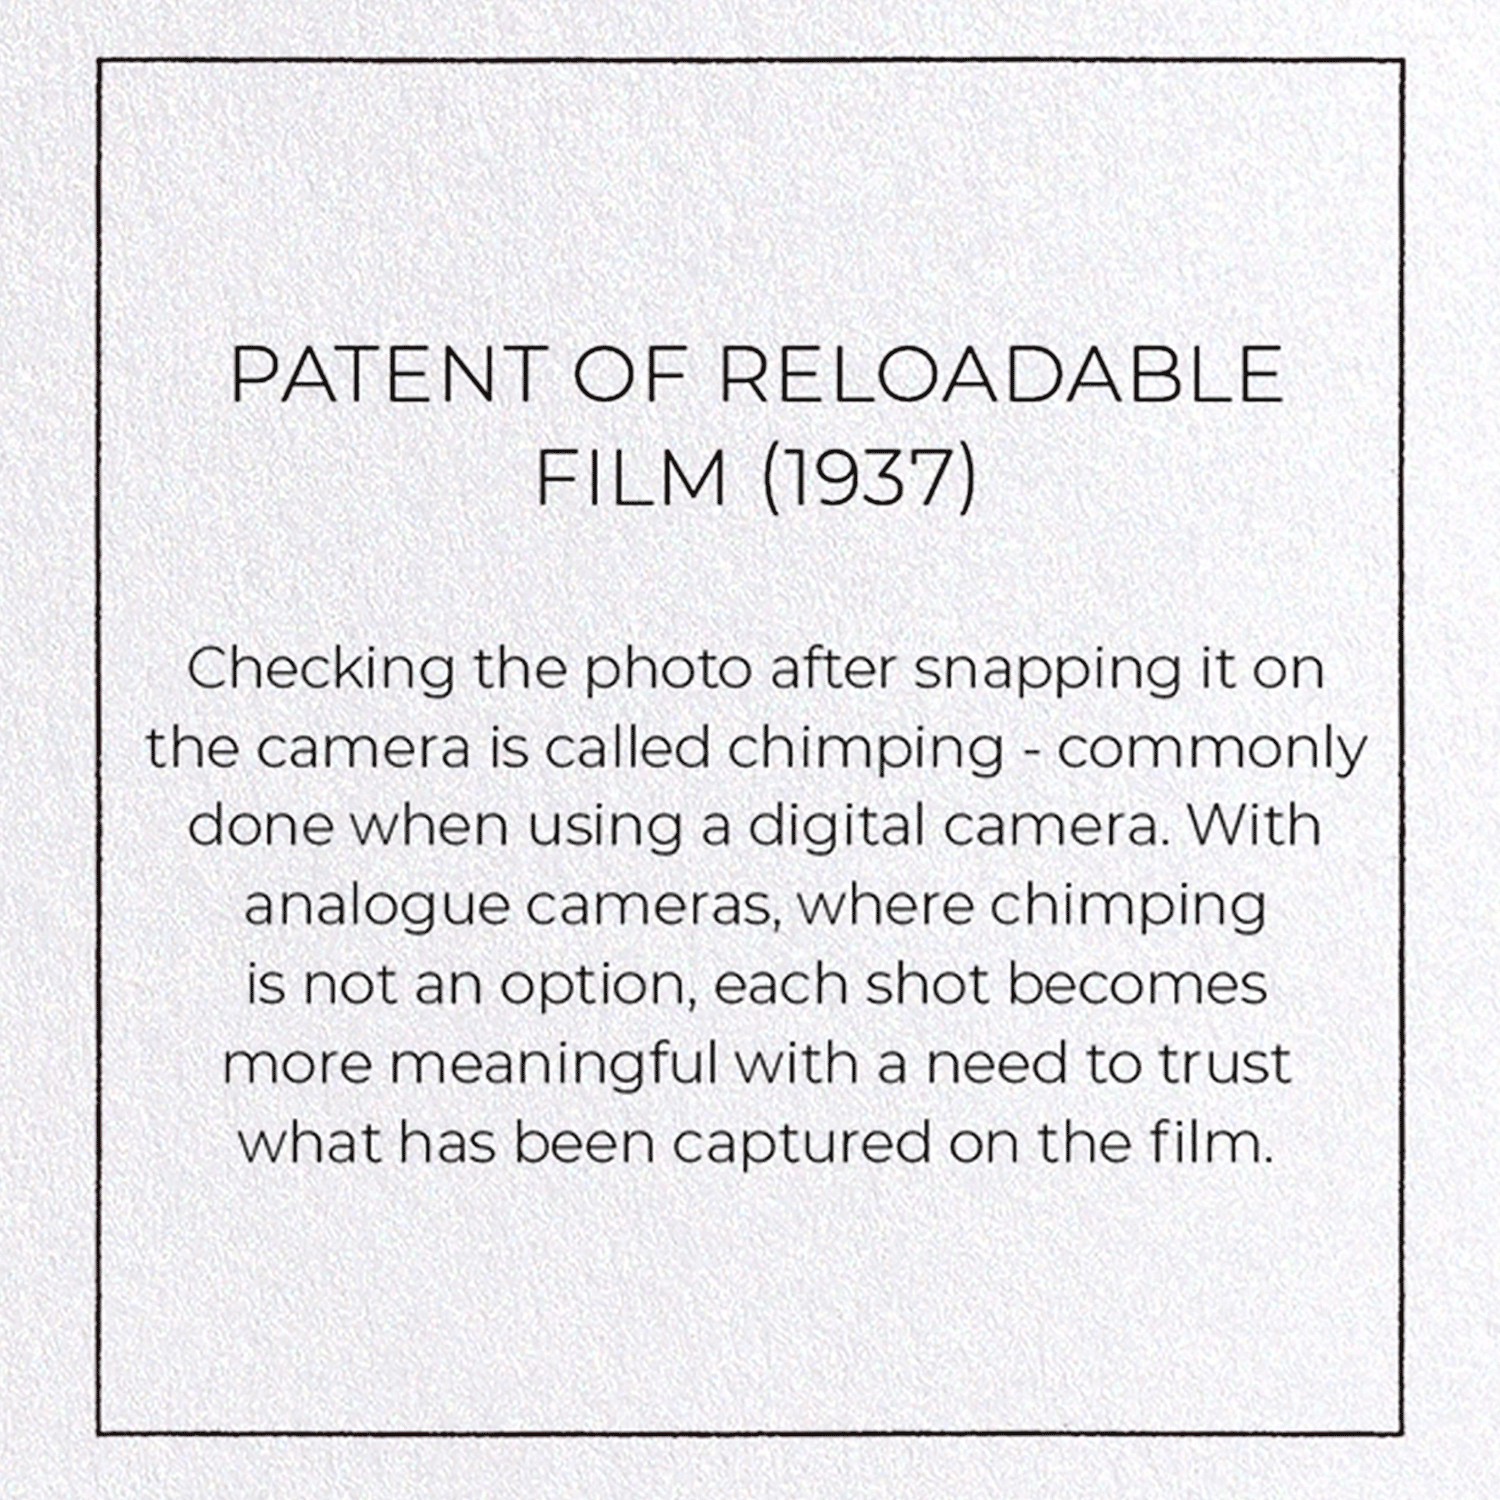 PATENT OF RELOADABLE FILM (1937): 8xCards